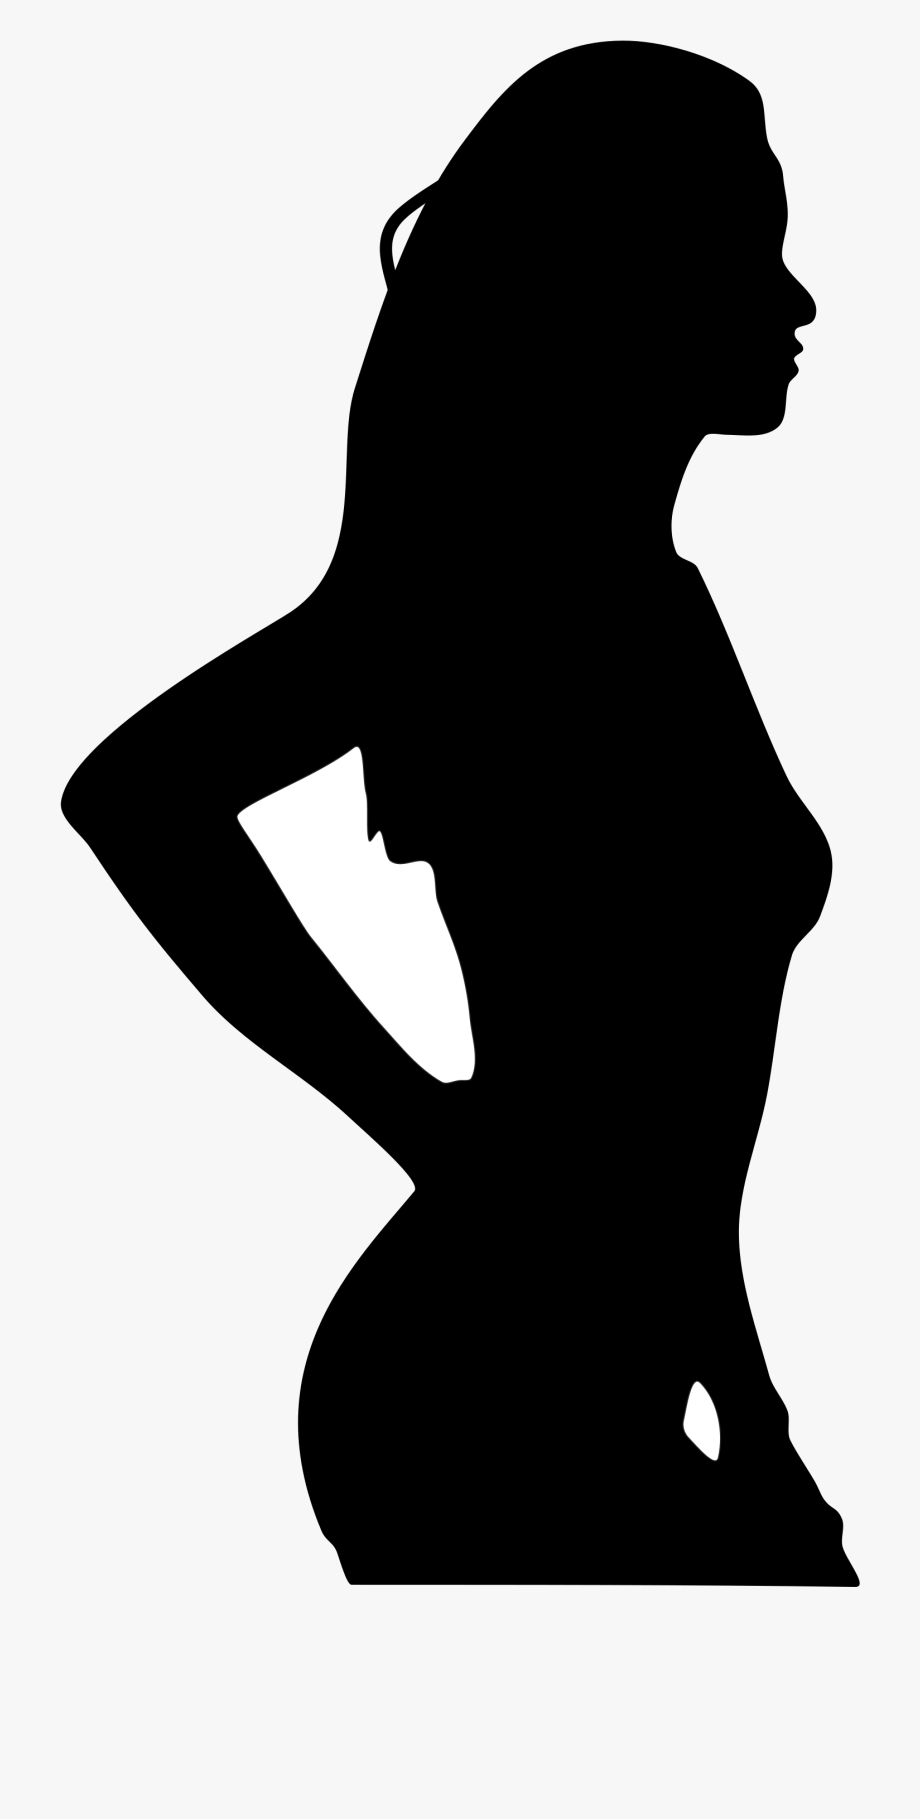 Jpg Royalty Free Pregnant Silhouette Clipart Png.